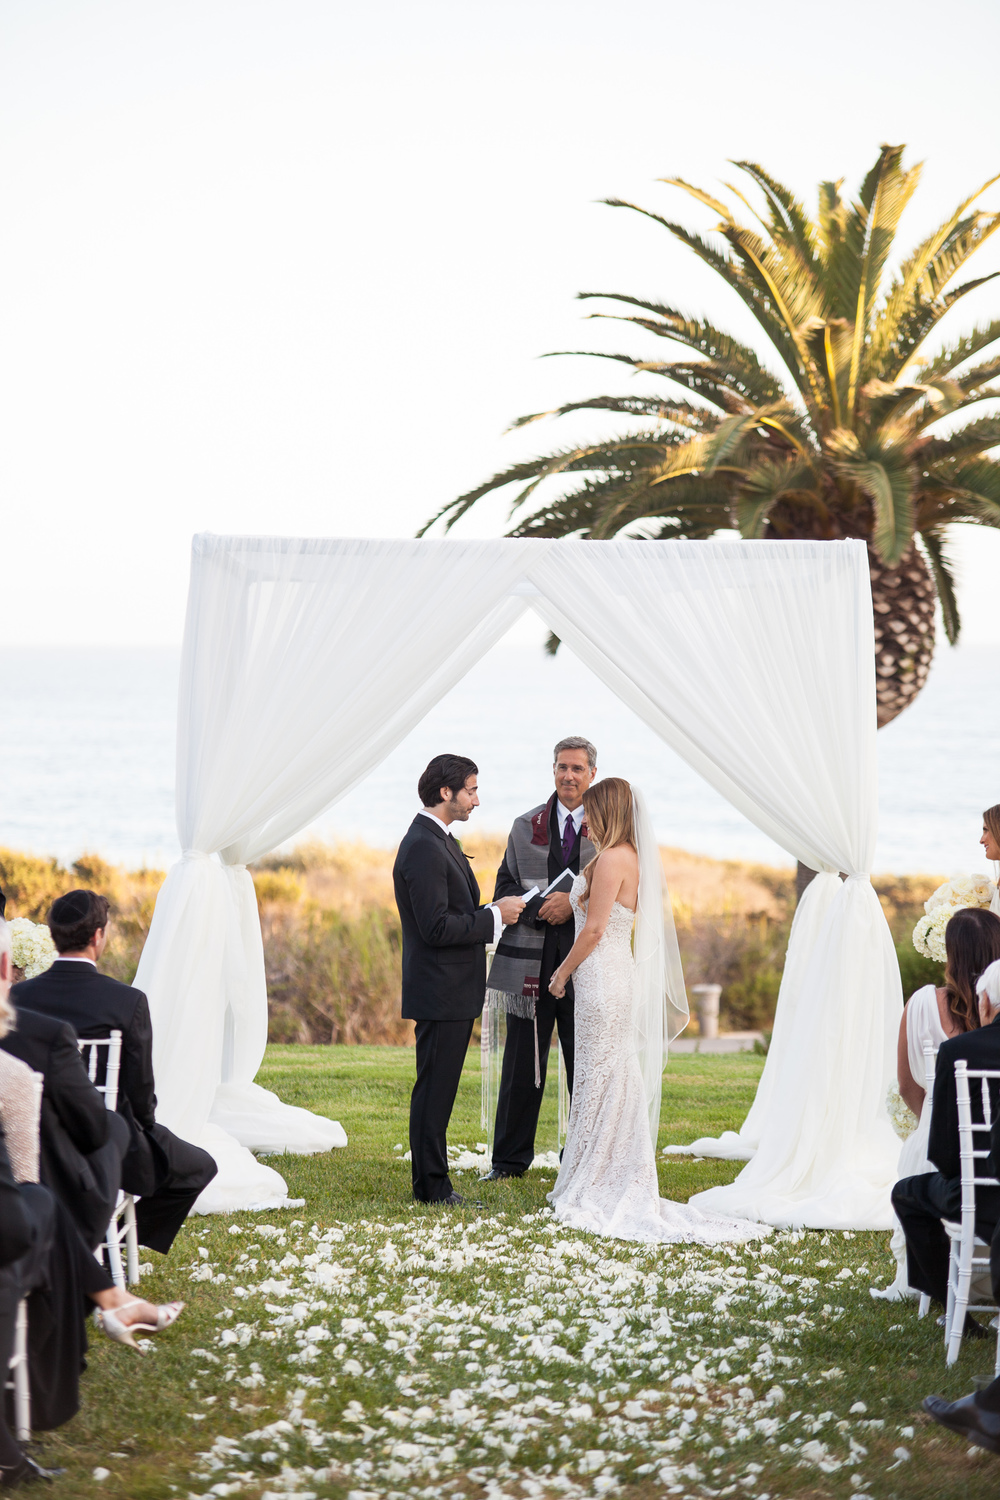 magnoliaeventdesign.com | Bacara Resort and Spa Wedding in Santa Barbara | Magnolia Event Design | Melissa Musgrove Photography